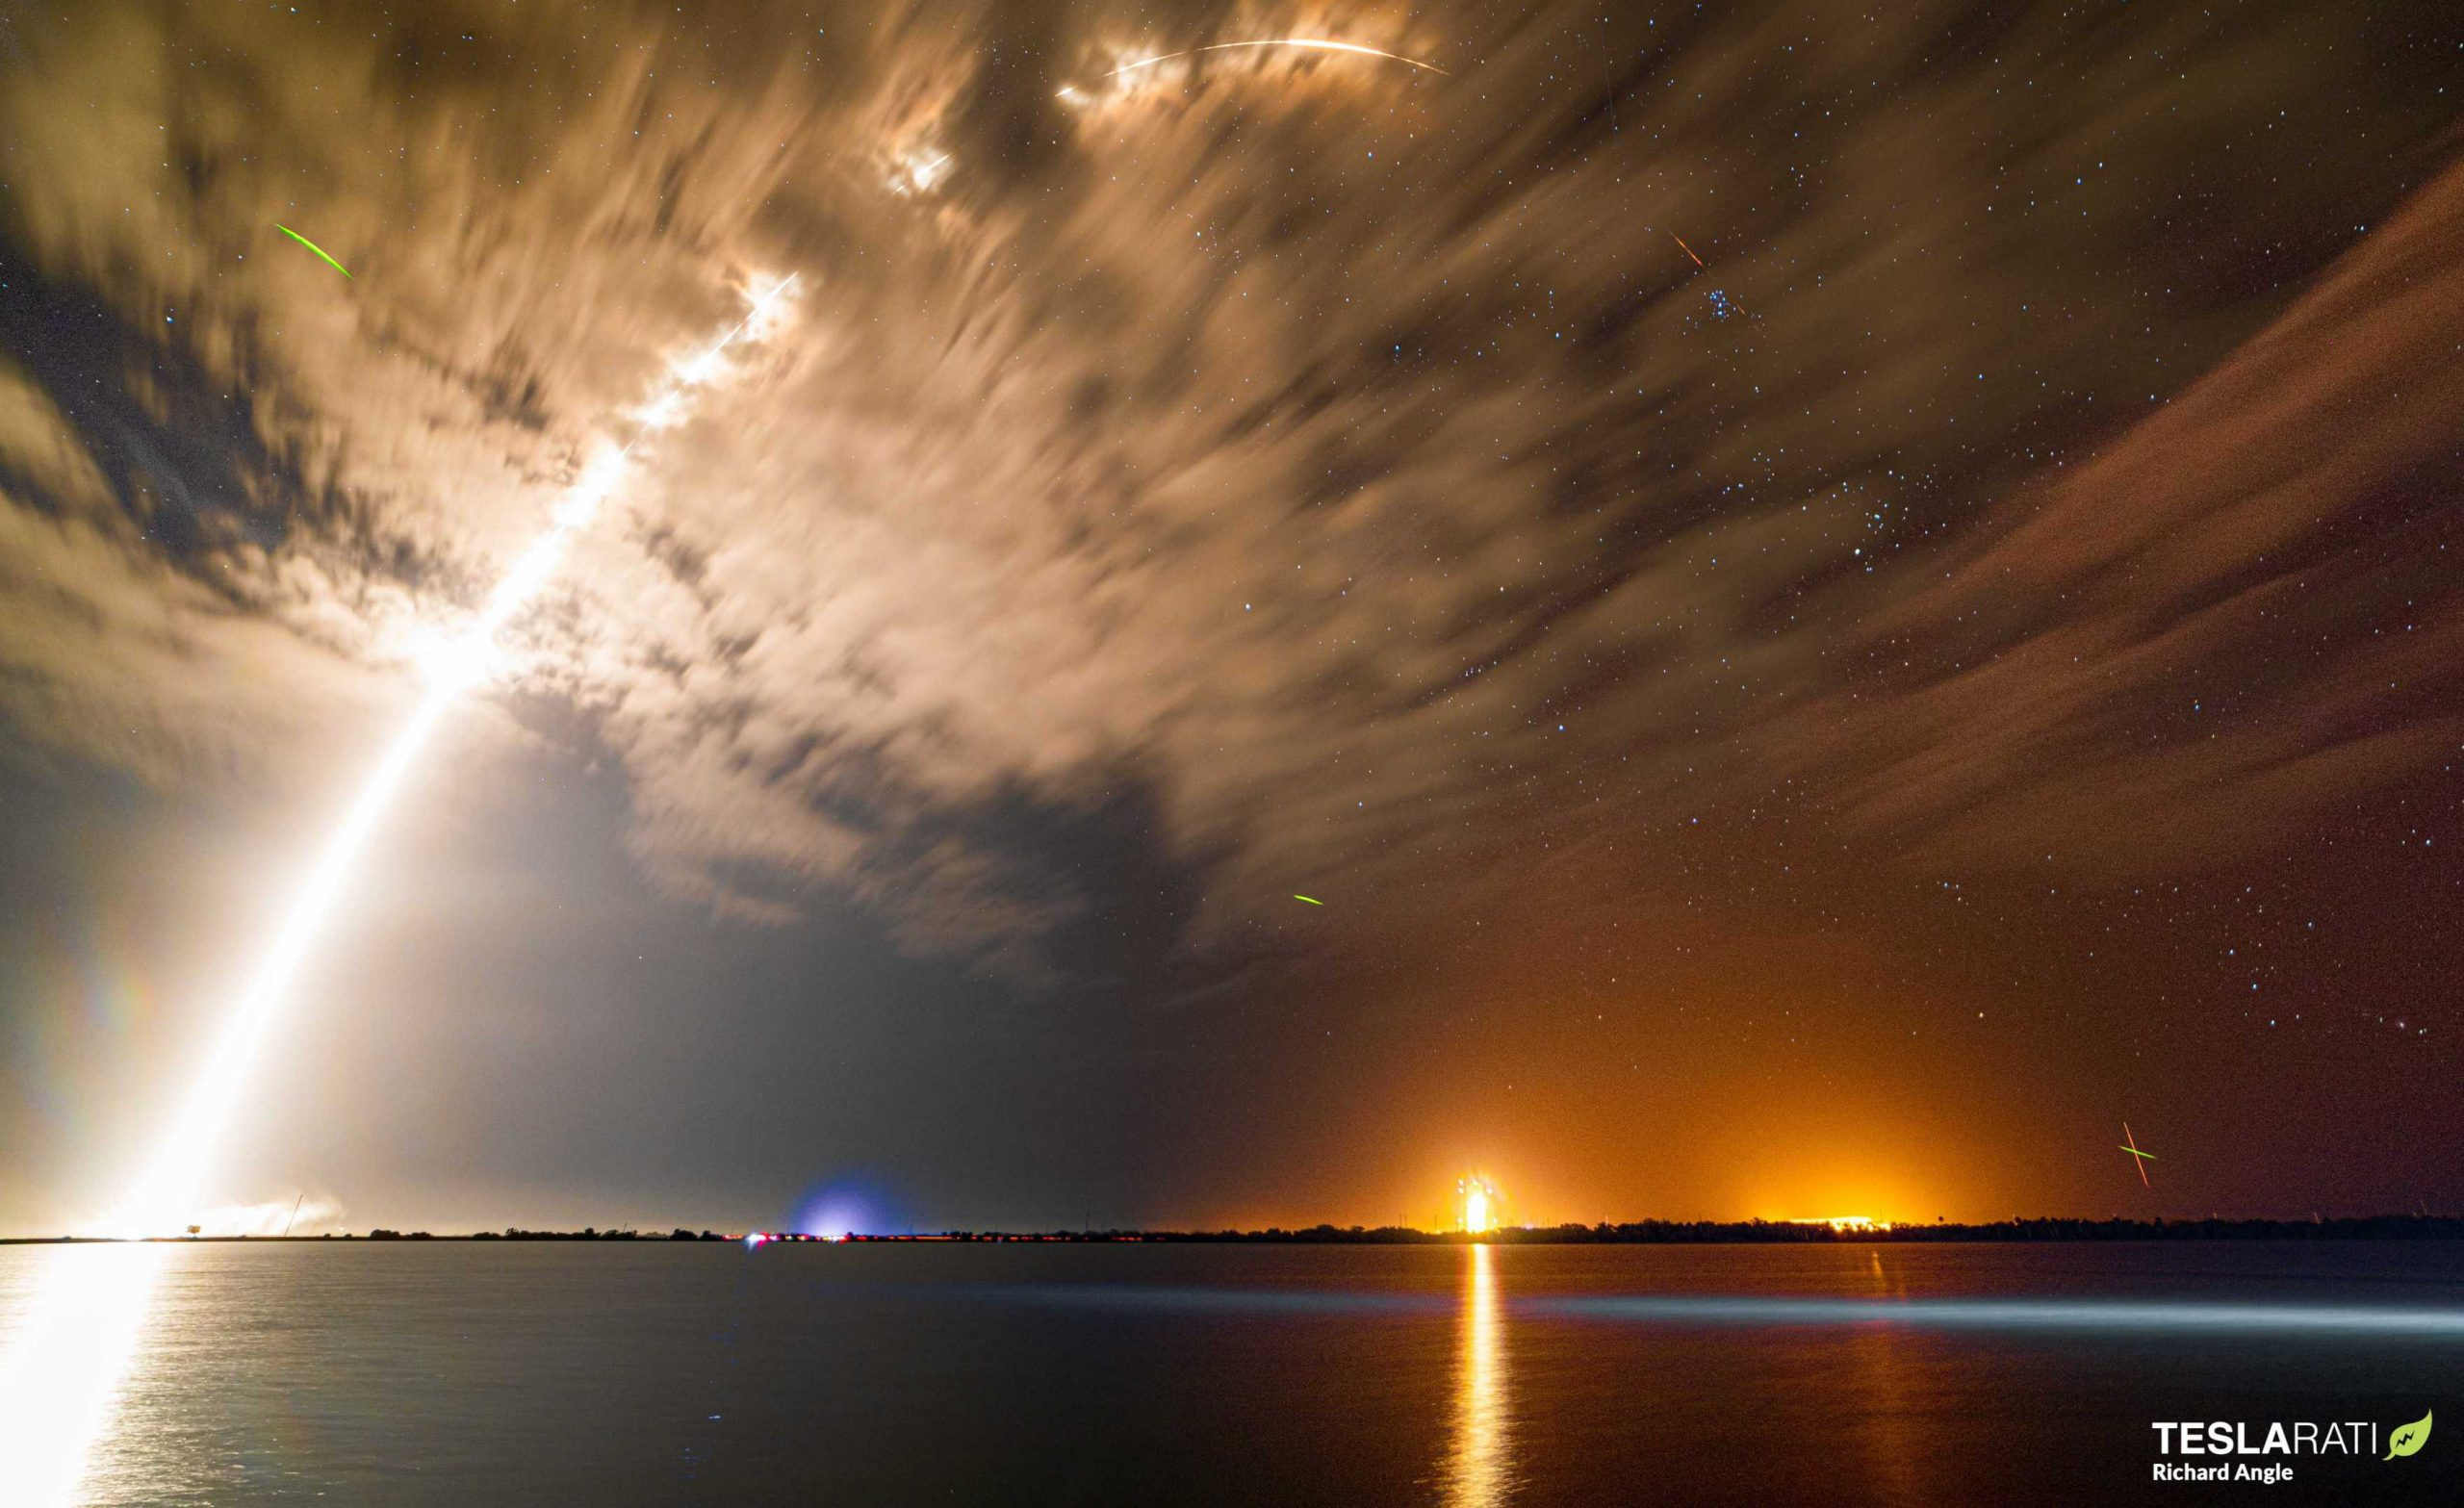 Falcon 9 Kacific-1 launch streak 121619 (Richard Angle) 1 fireflies crop (c)